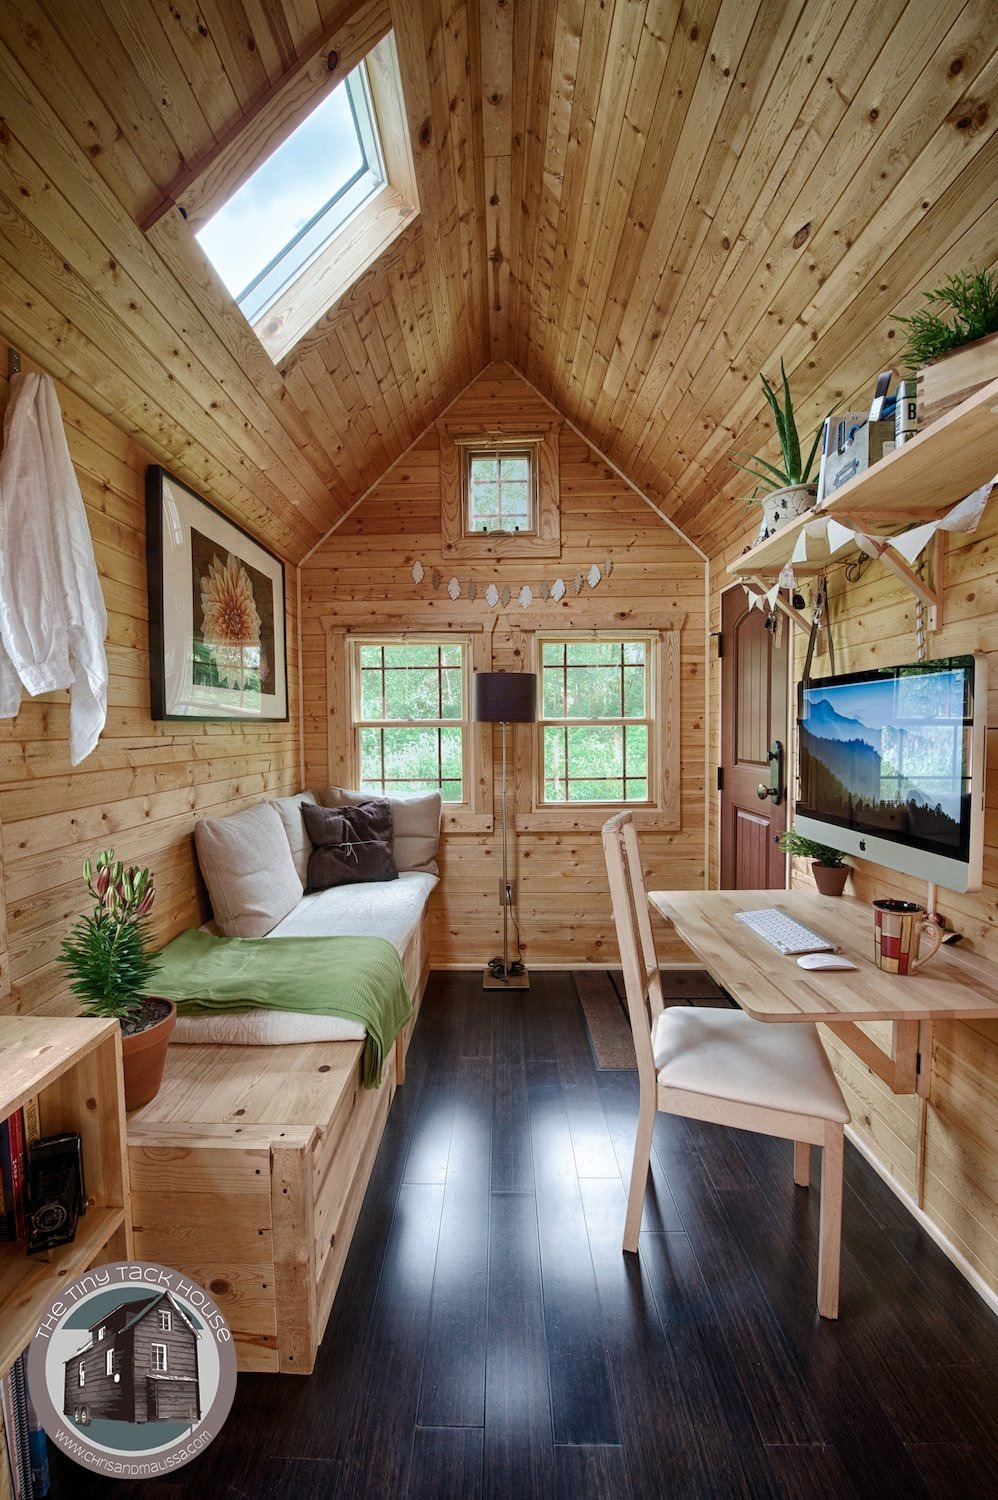 Beautiful Homes Inside and Out Elegant 16 Tiny House Interiors You Wish You Could Live In